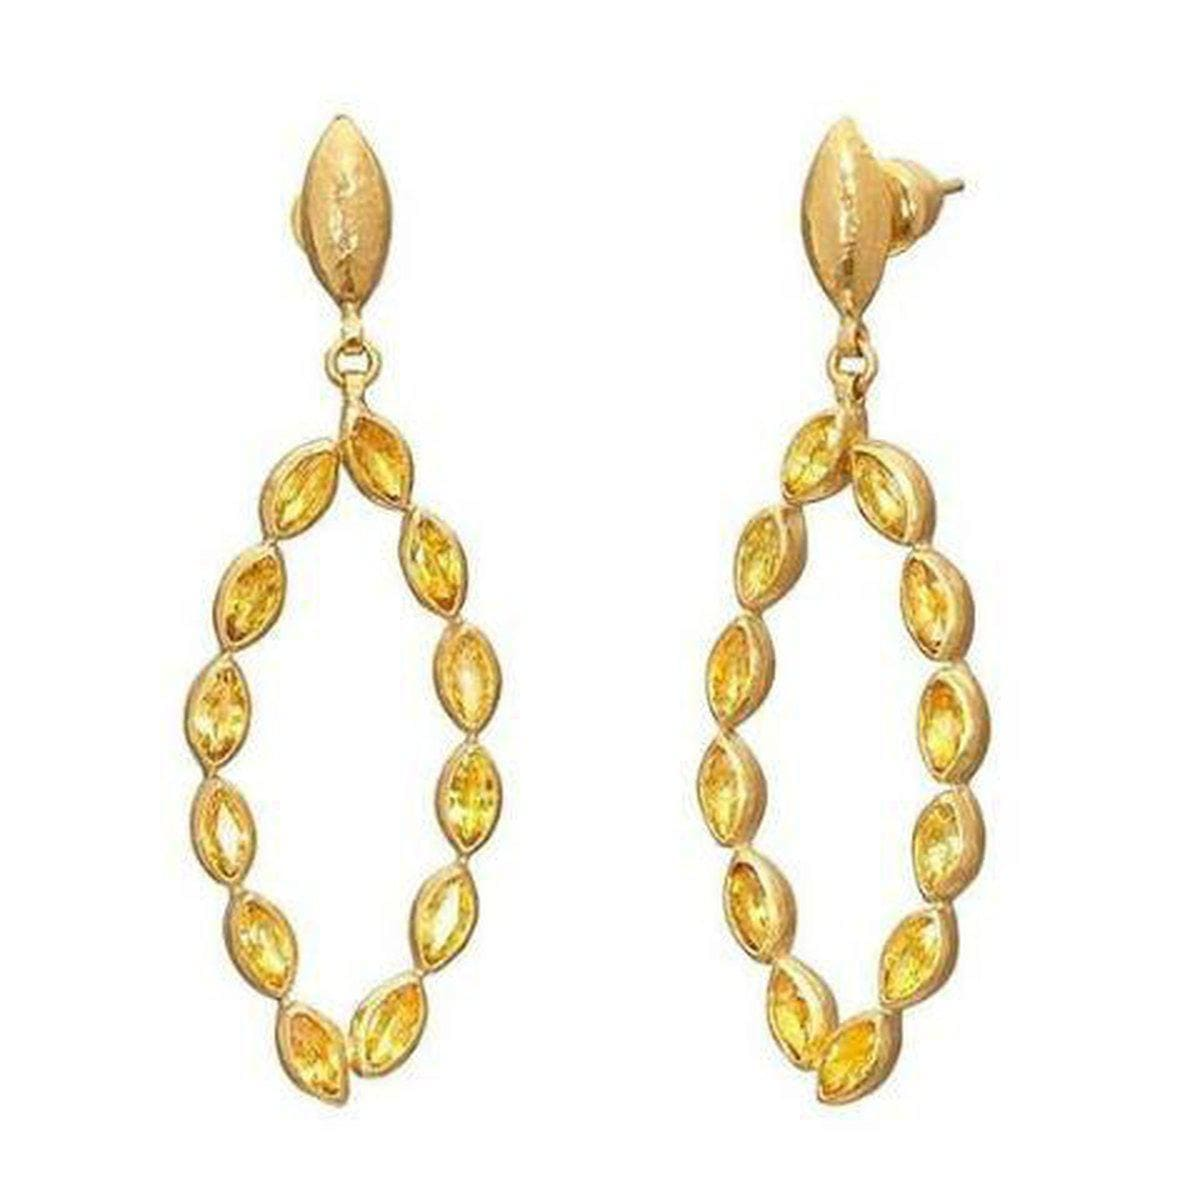 Pointelle 24K Gold Yellow Sapphire Earrings - E-U25671-SA-GURHAN-Renee Taylor Gallery